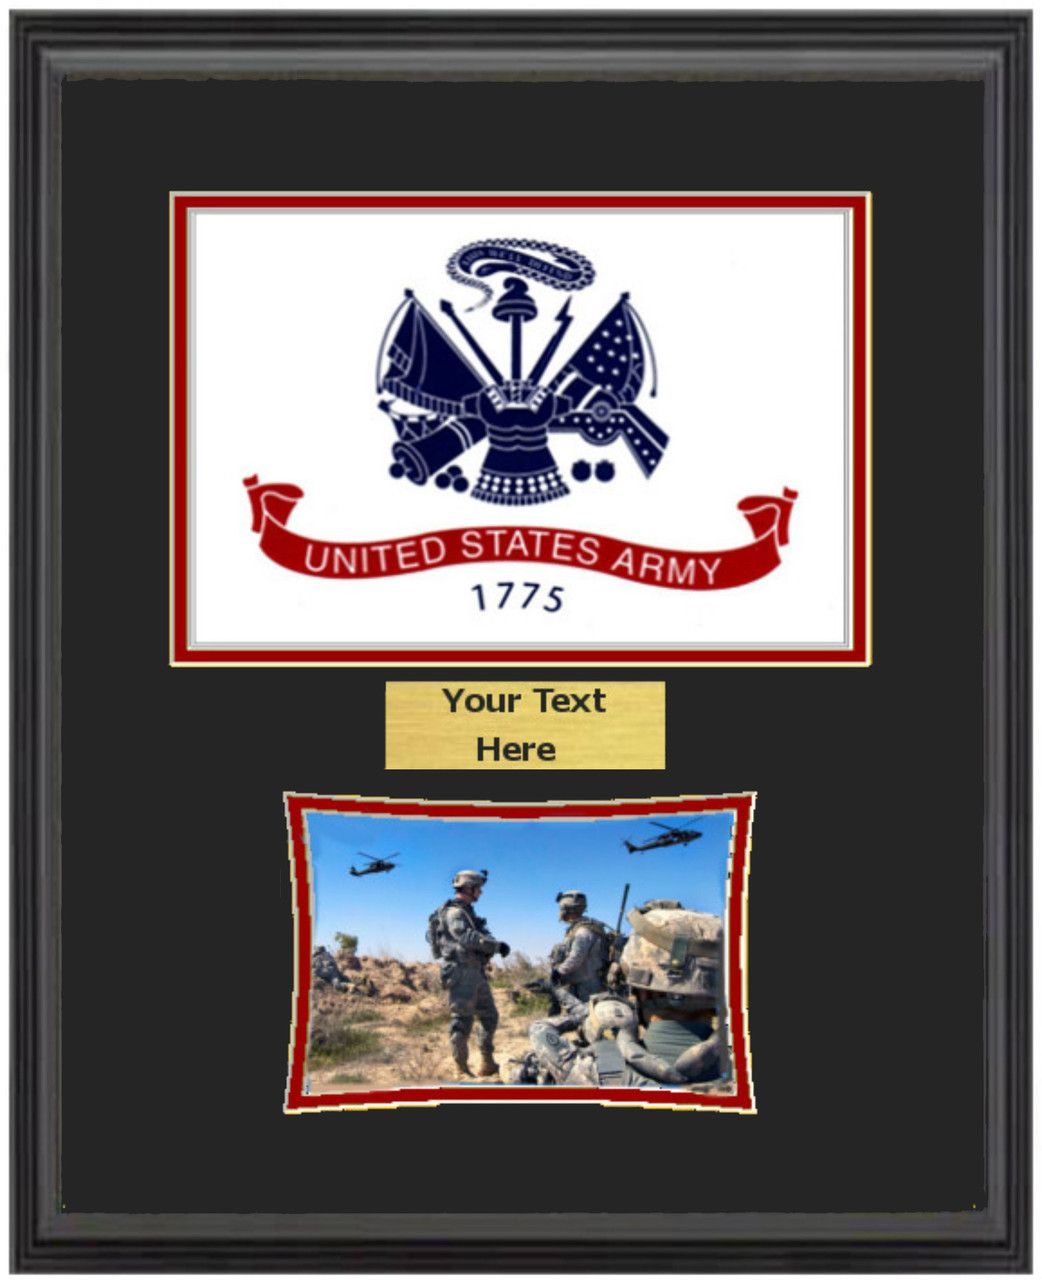 Military memories and more 14 x 18 us army flag frame w 5 x military memories and more 14 x 18 us army flag frame w jeuxipadfo Images